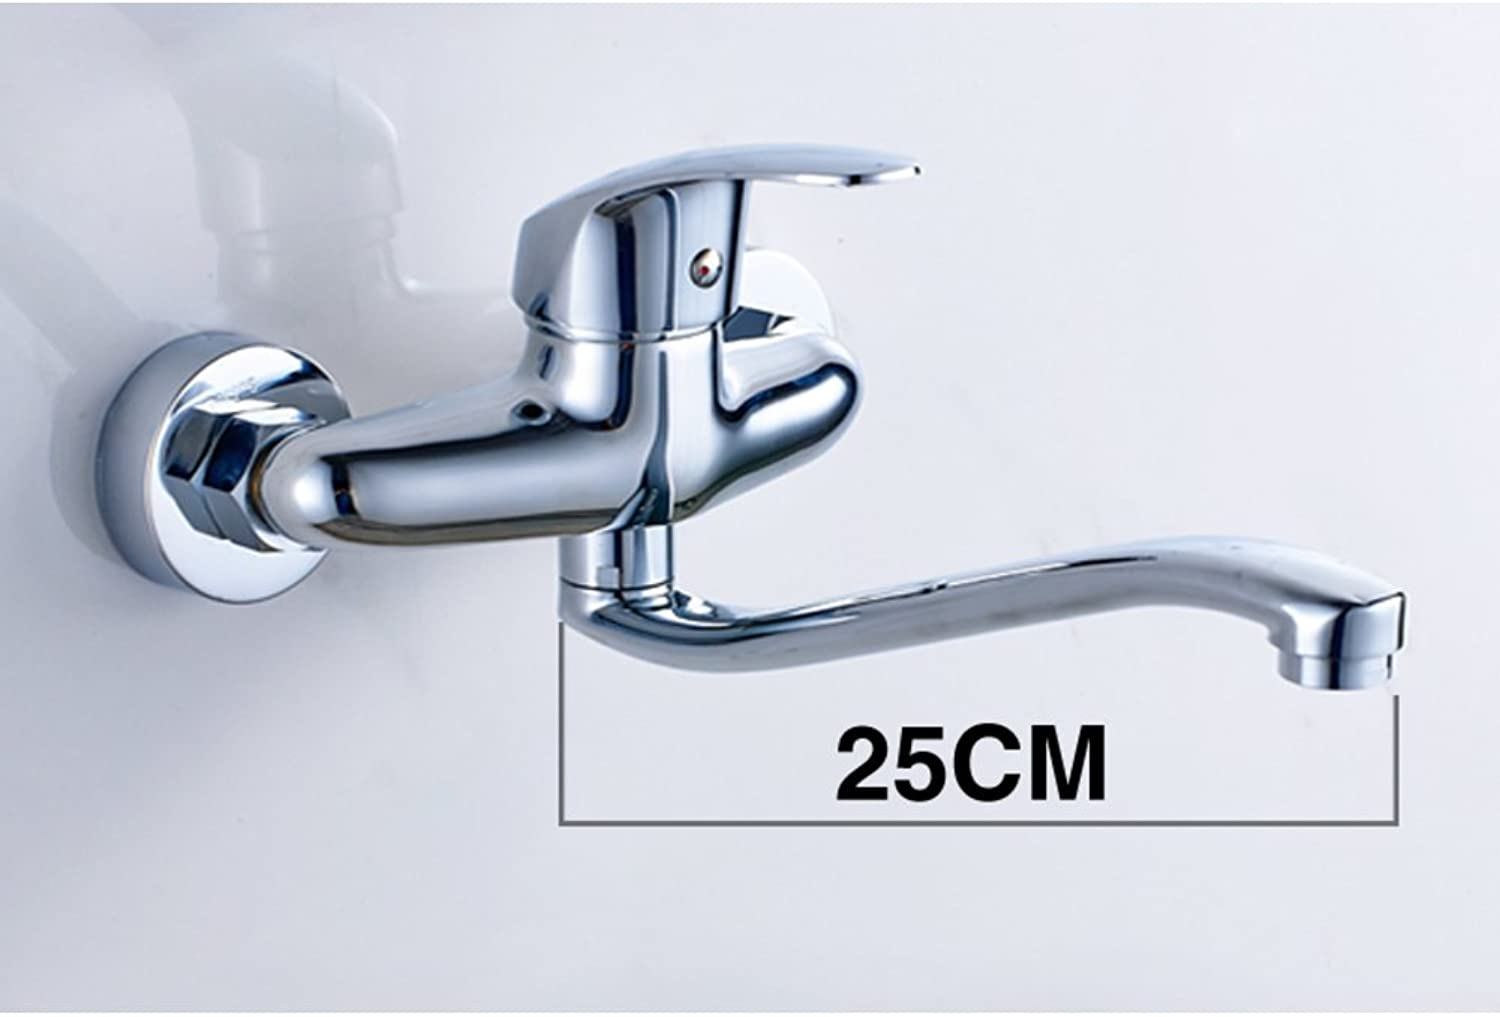 Copper wall-mounted taps  kitchen sink faucet  hot and cold water replaced tap-D